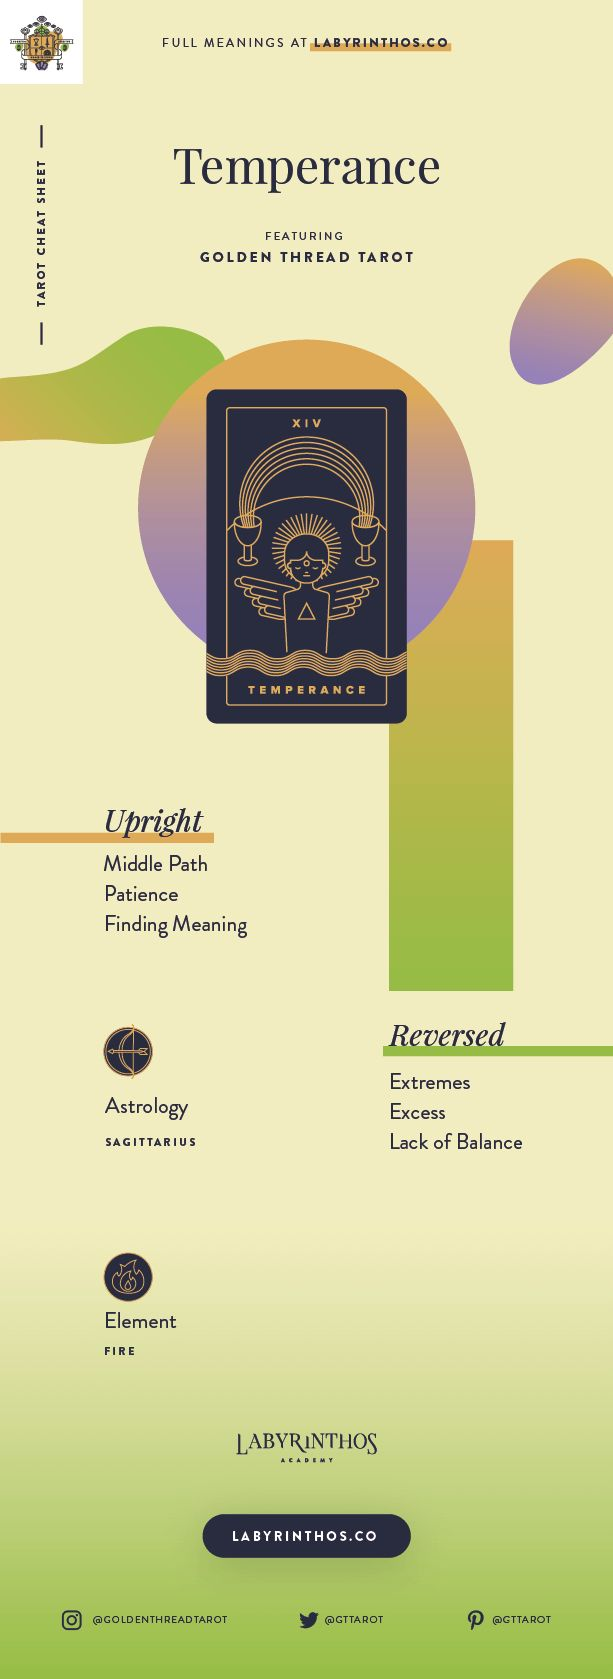 Temperance Meaning - Tarot Card Meanings Cheat Sheet. Art from Golden Thread Tarot.